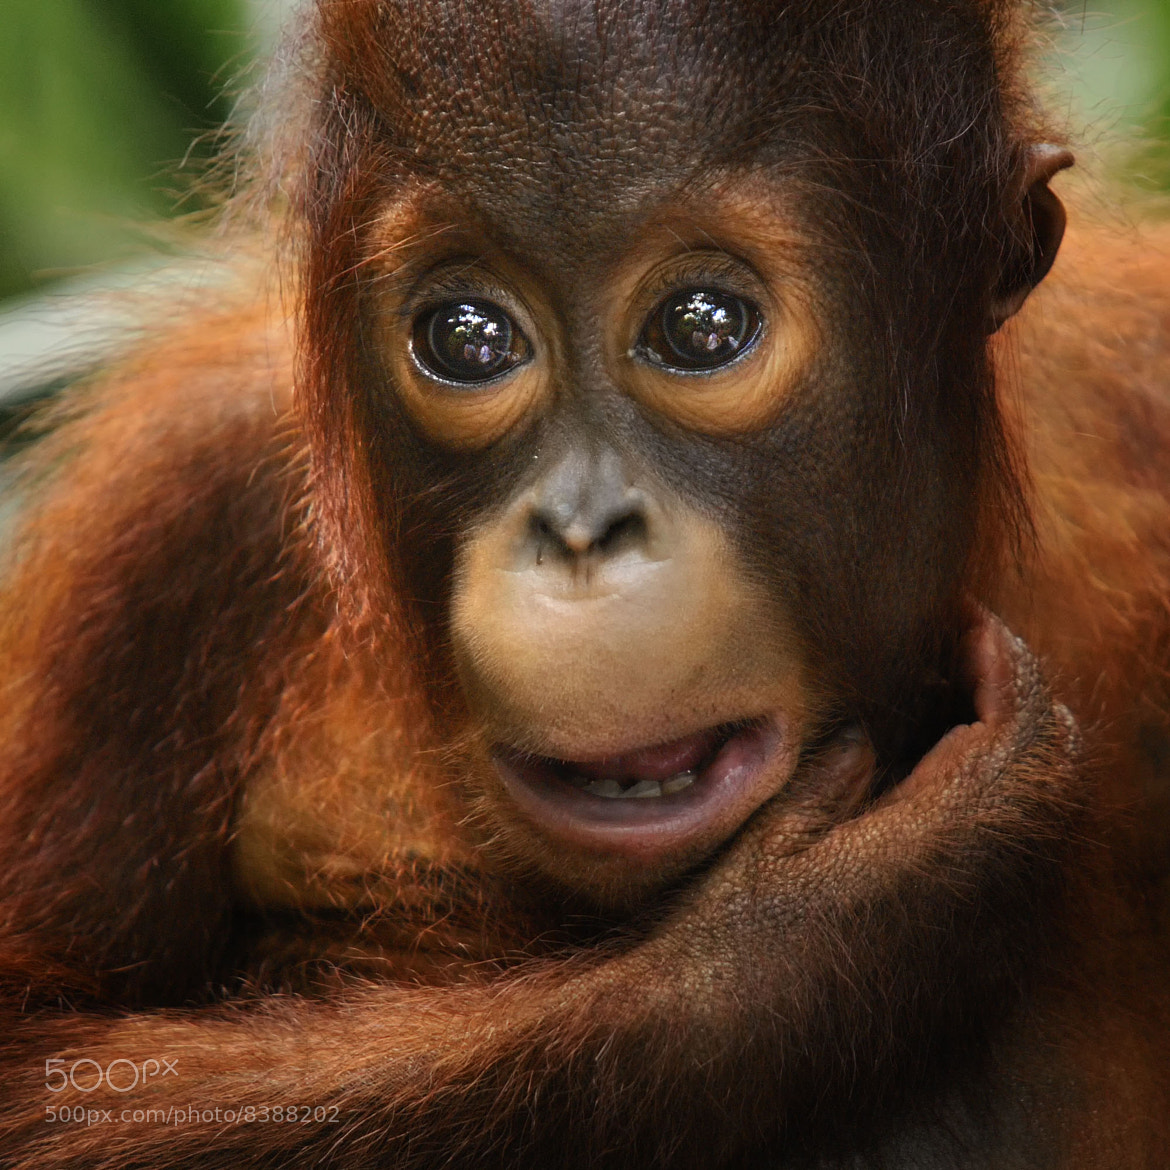 Photograph Orang Utan by toonman blchin on 500px